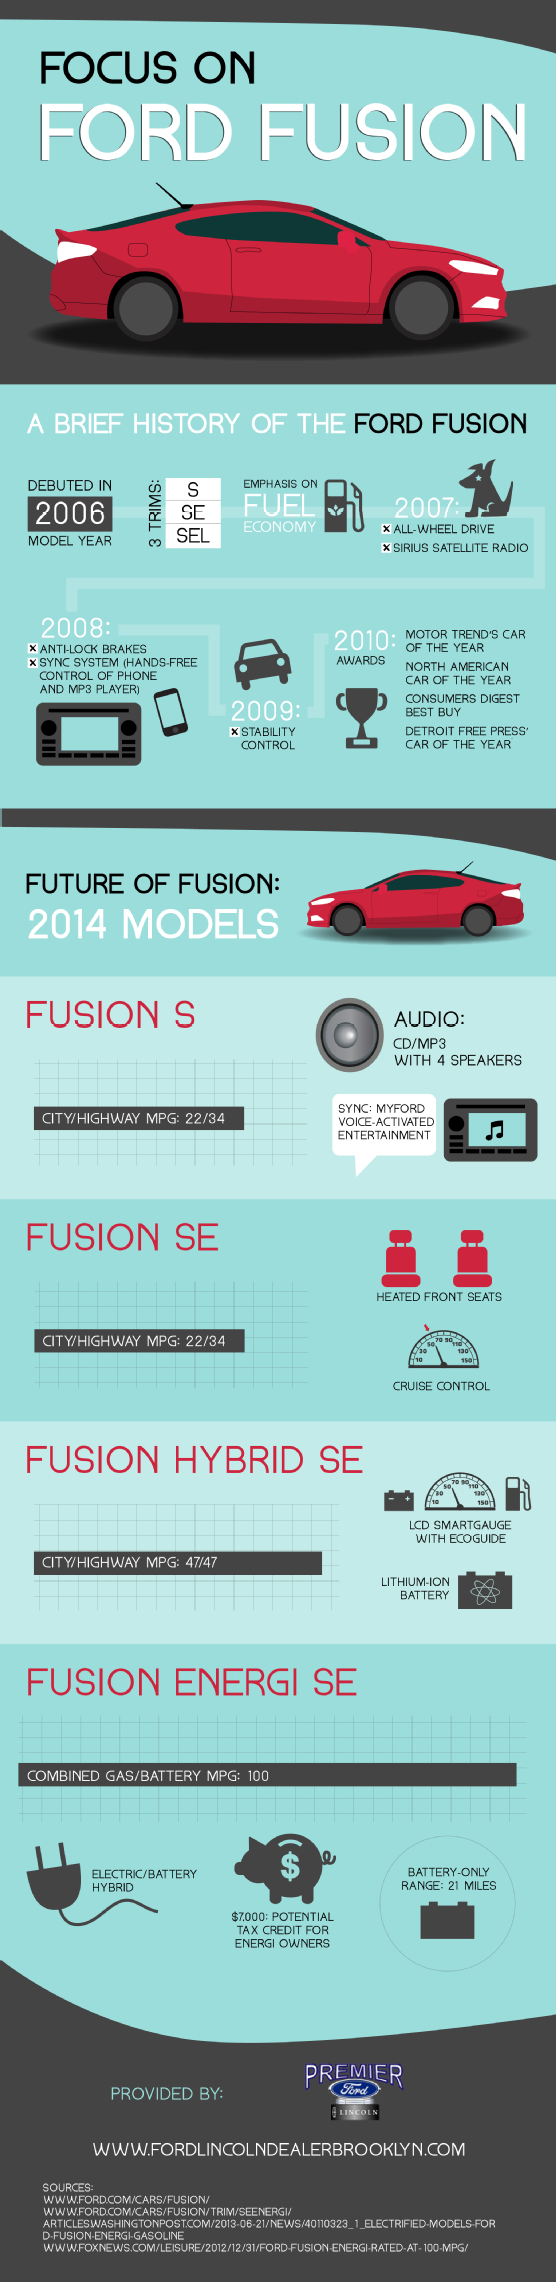 evolution-of-the-ford-fusion_521384c94ff12